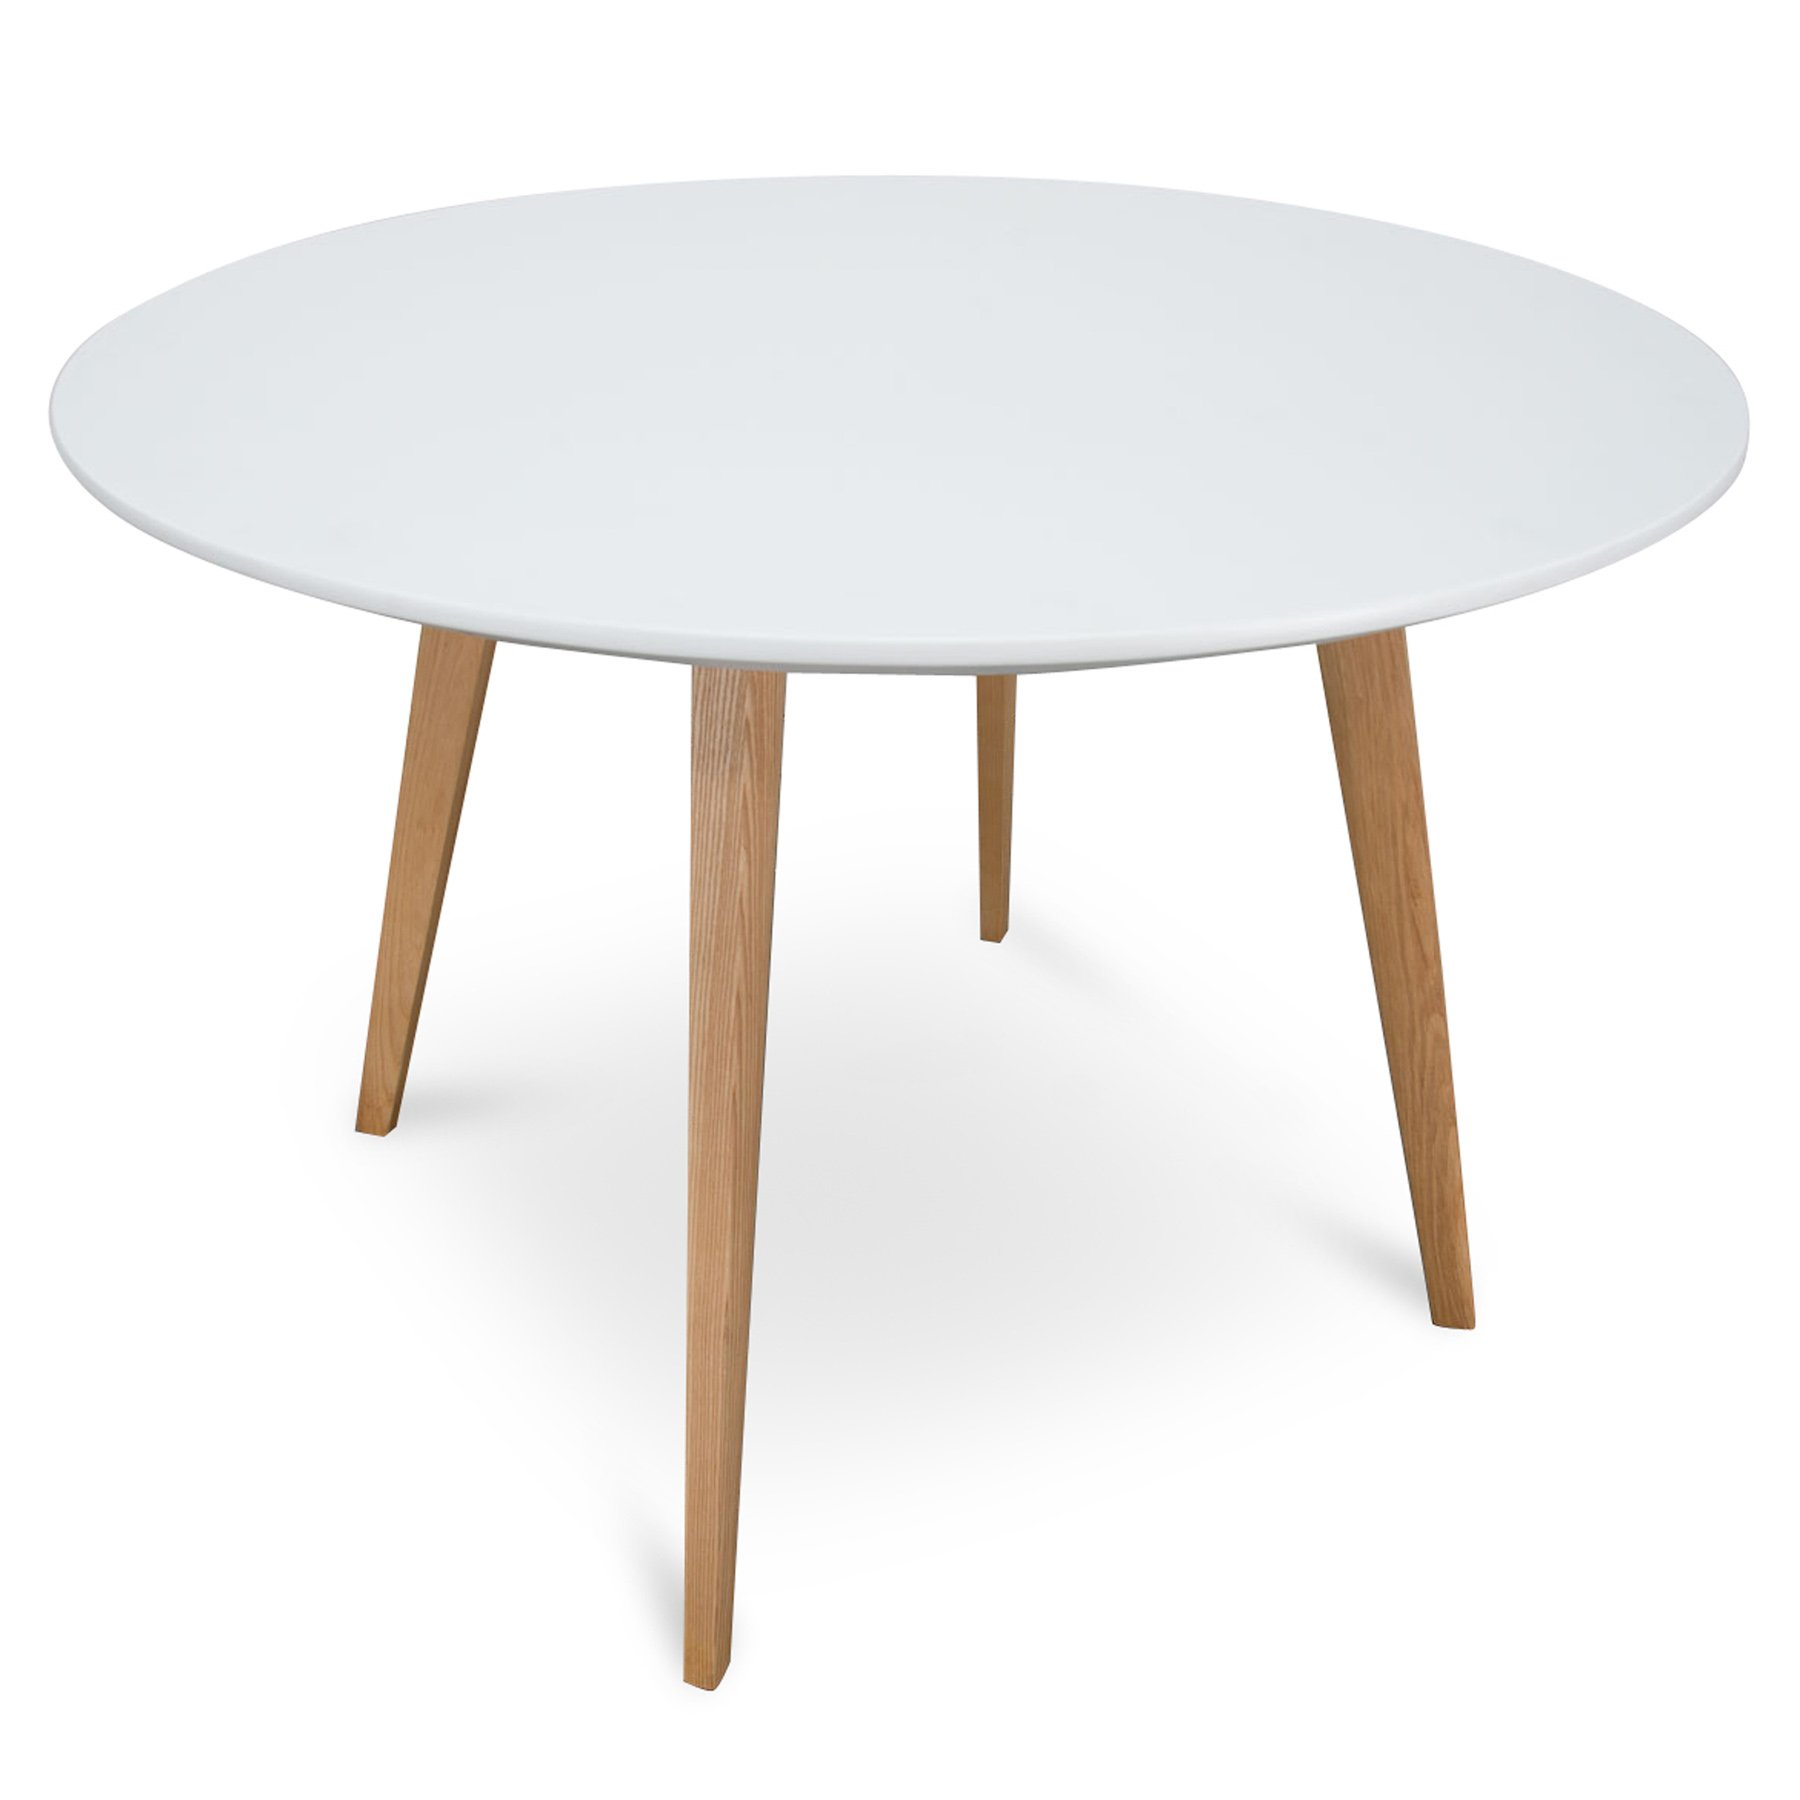 Halo 9cm Round Wooden Dining Table   White   Natura..   Interior ...